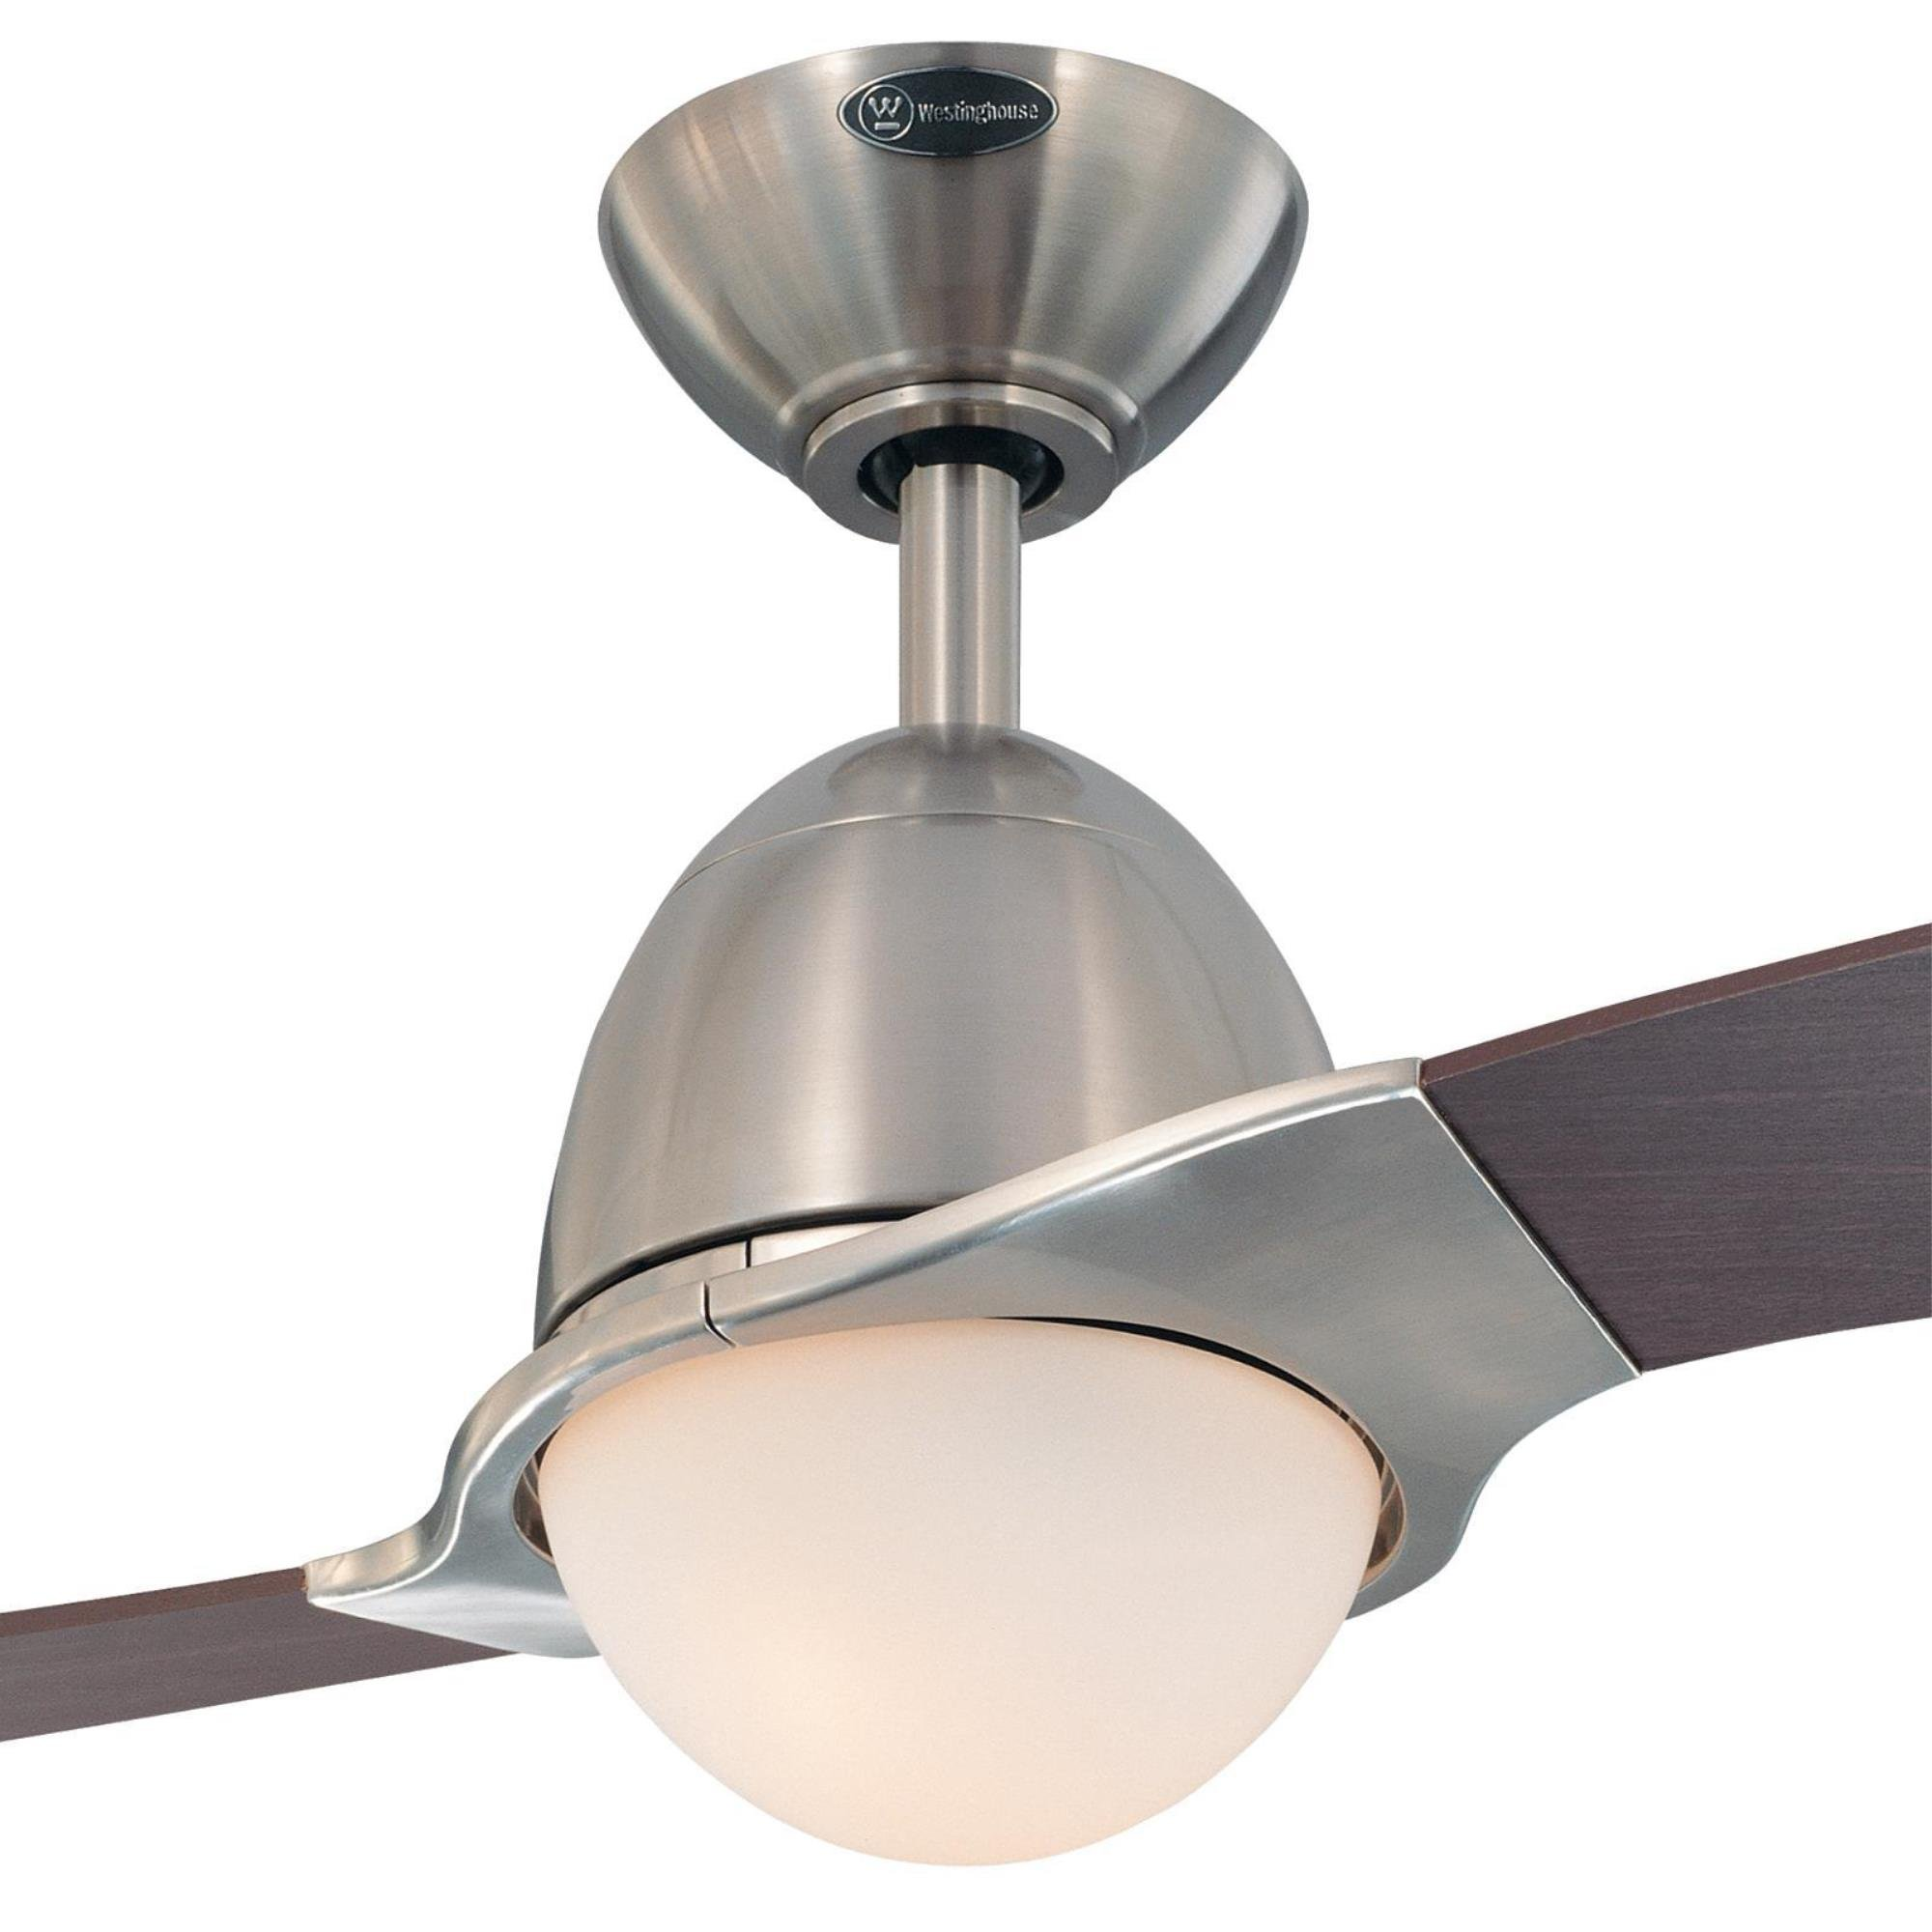 7216100 Solana 48-Inch Brushed Nickel Indoor Ceiling Fan, Light Kit with Opal Frosted Glass by Westinghouse (Image #6)